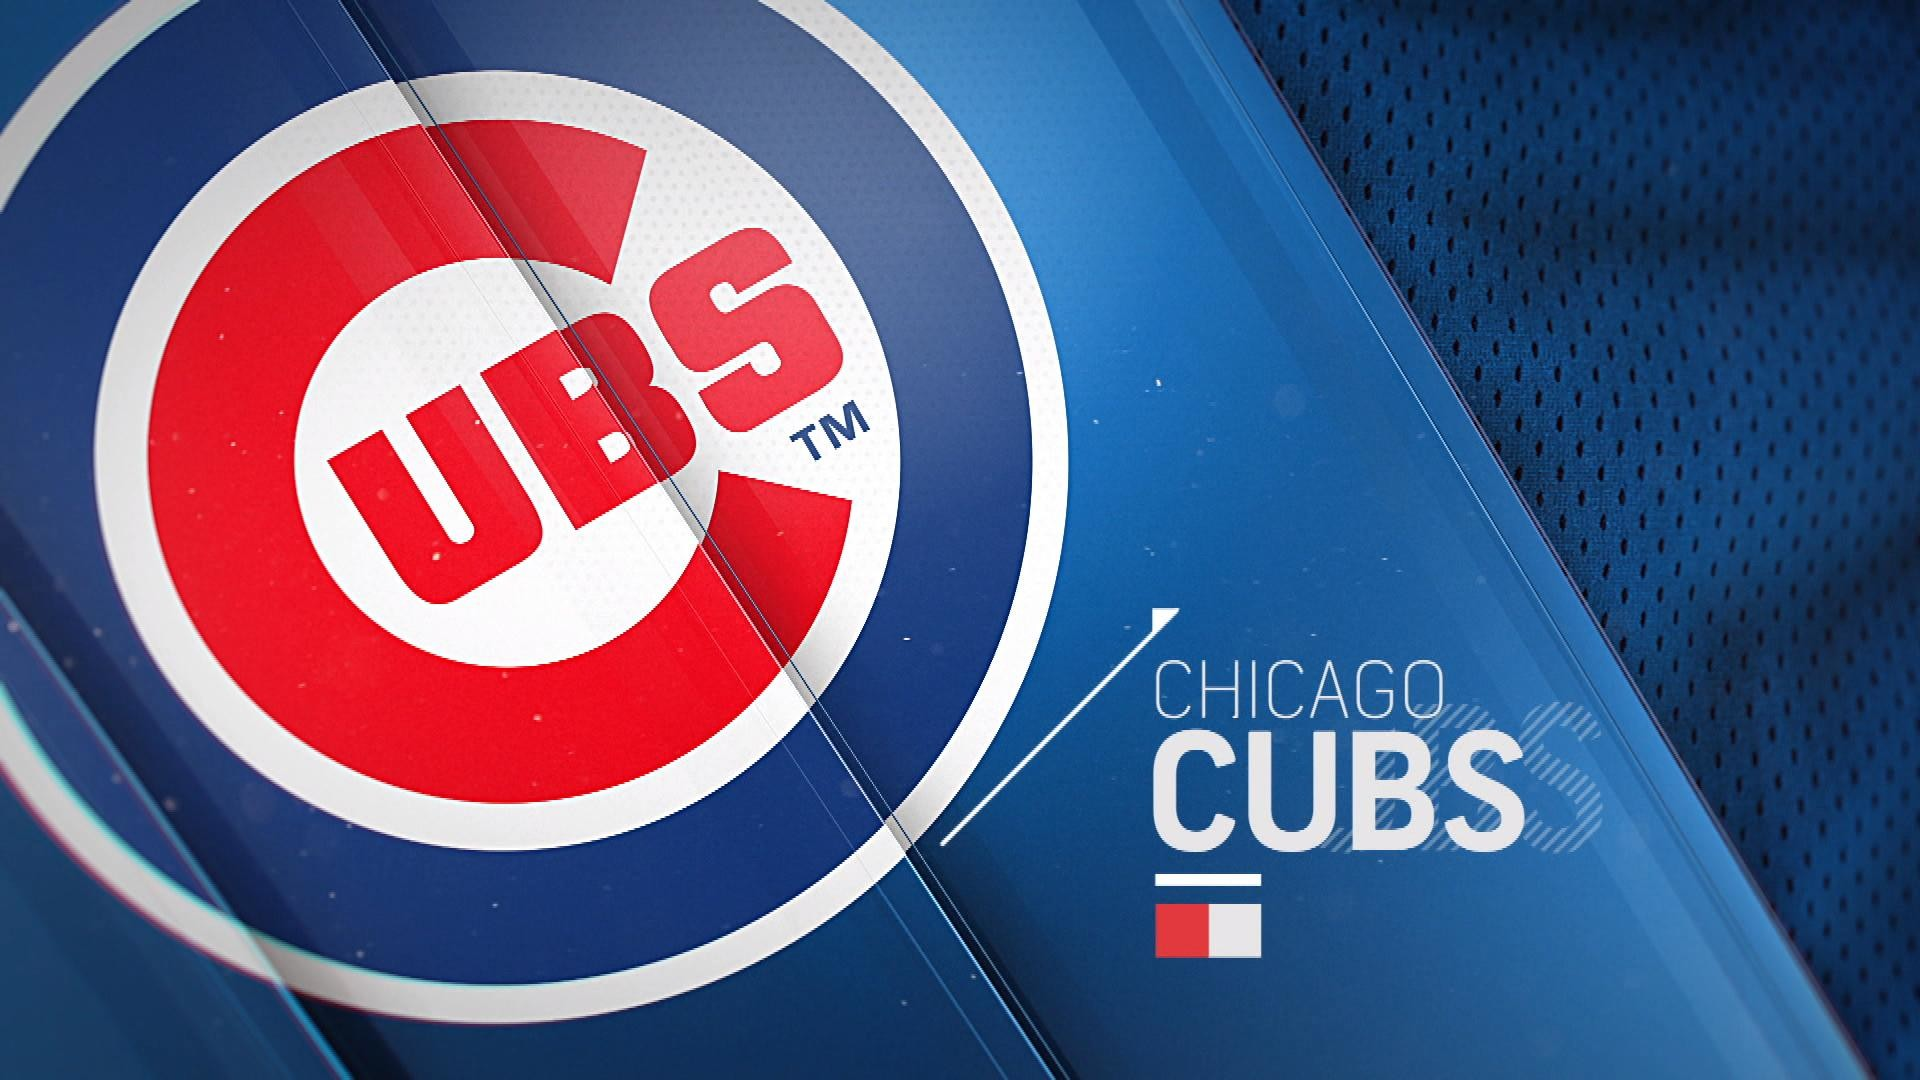 1920x1080 ... chicago cubs 2016 postseason wallpaper image gallery hcpr; free cubs  wallpaper screensavers wallpapersafari ...